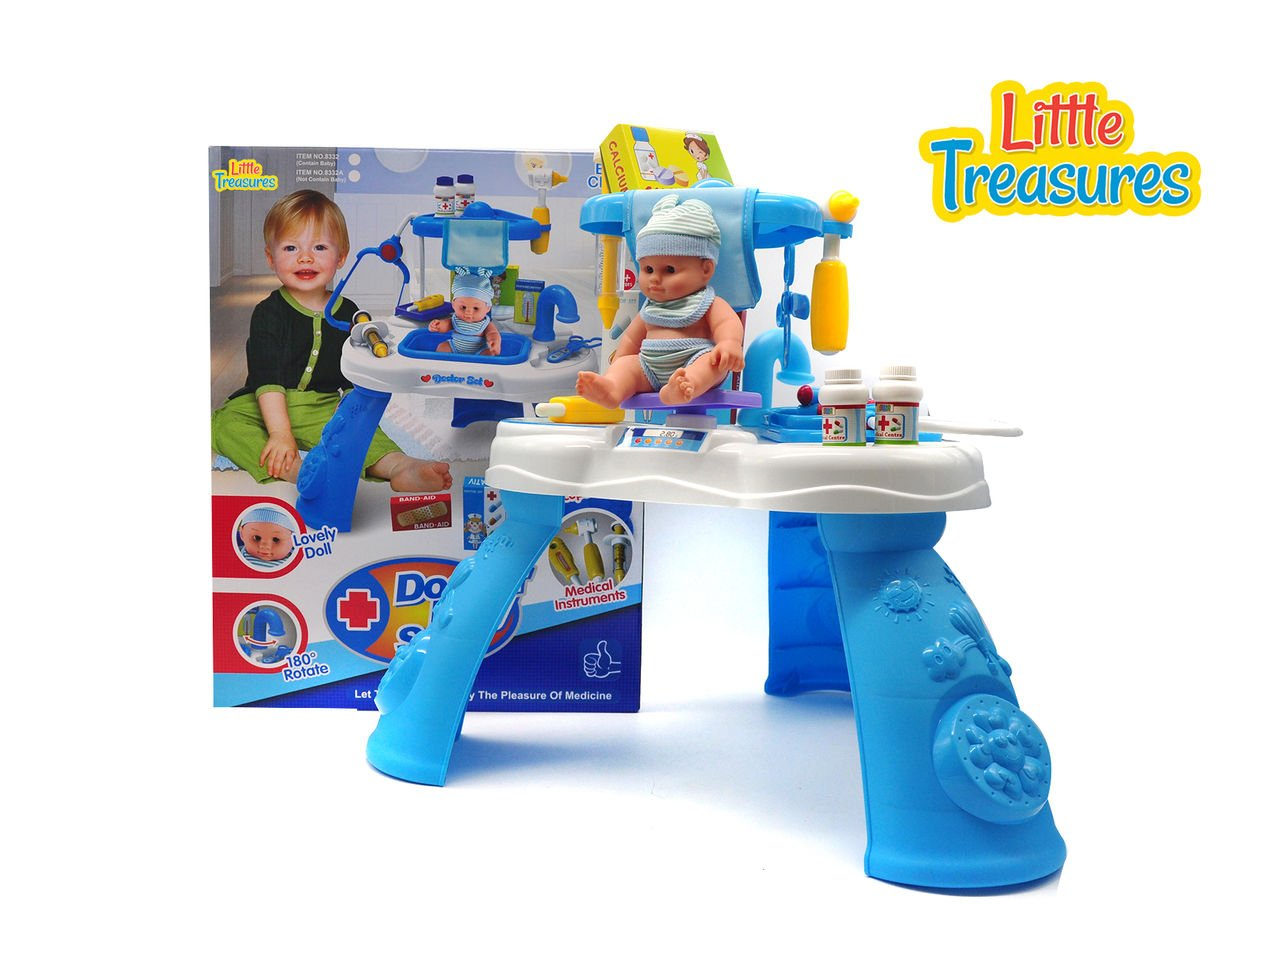 Little Treasures Doctor Play Set – Complete with Medical Station, Sink, Medical Instruments, and Supplies – pretend Dr nurse 21+ pieces play toy set for children 3+